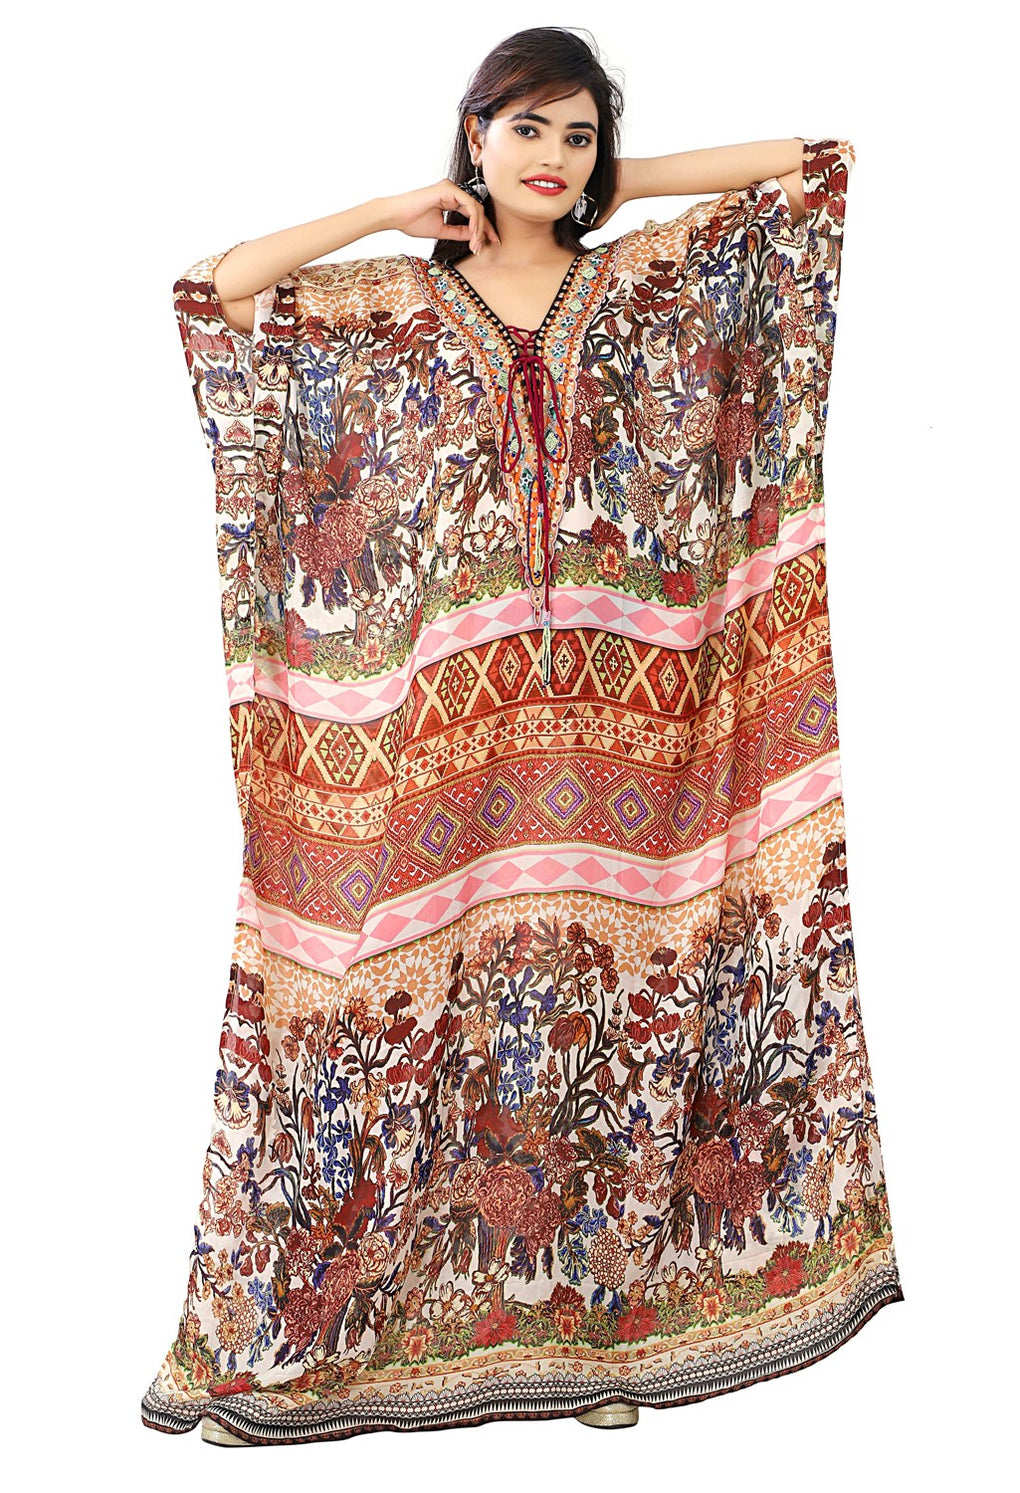 Lace Up Innovative Floral Kaftans with embellishment of strings and traditional handwork - Silk kaftan